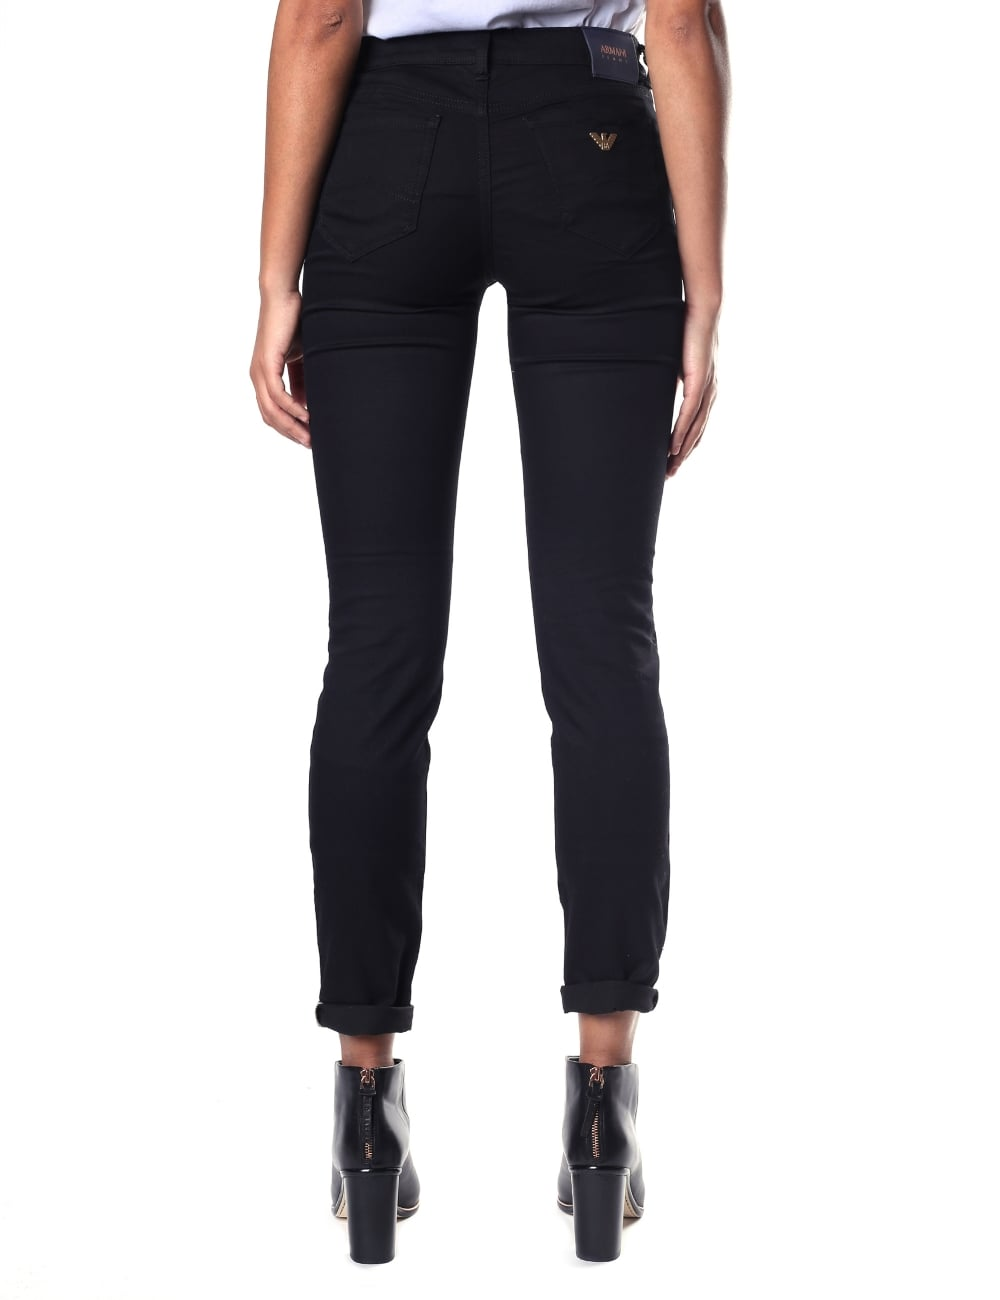 free shipping 298c7 ae60c Armani Jeans Women's Push Up Jeans